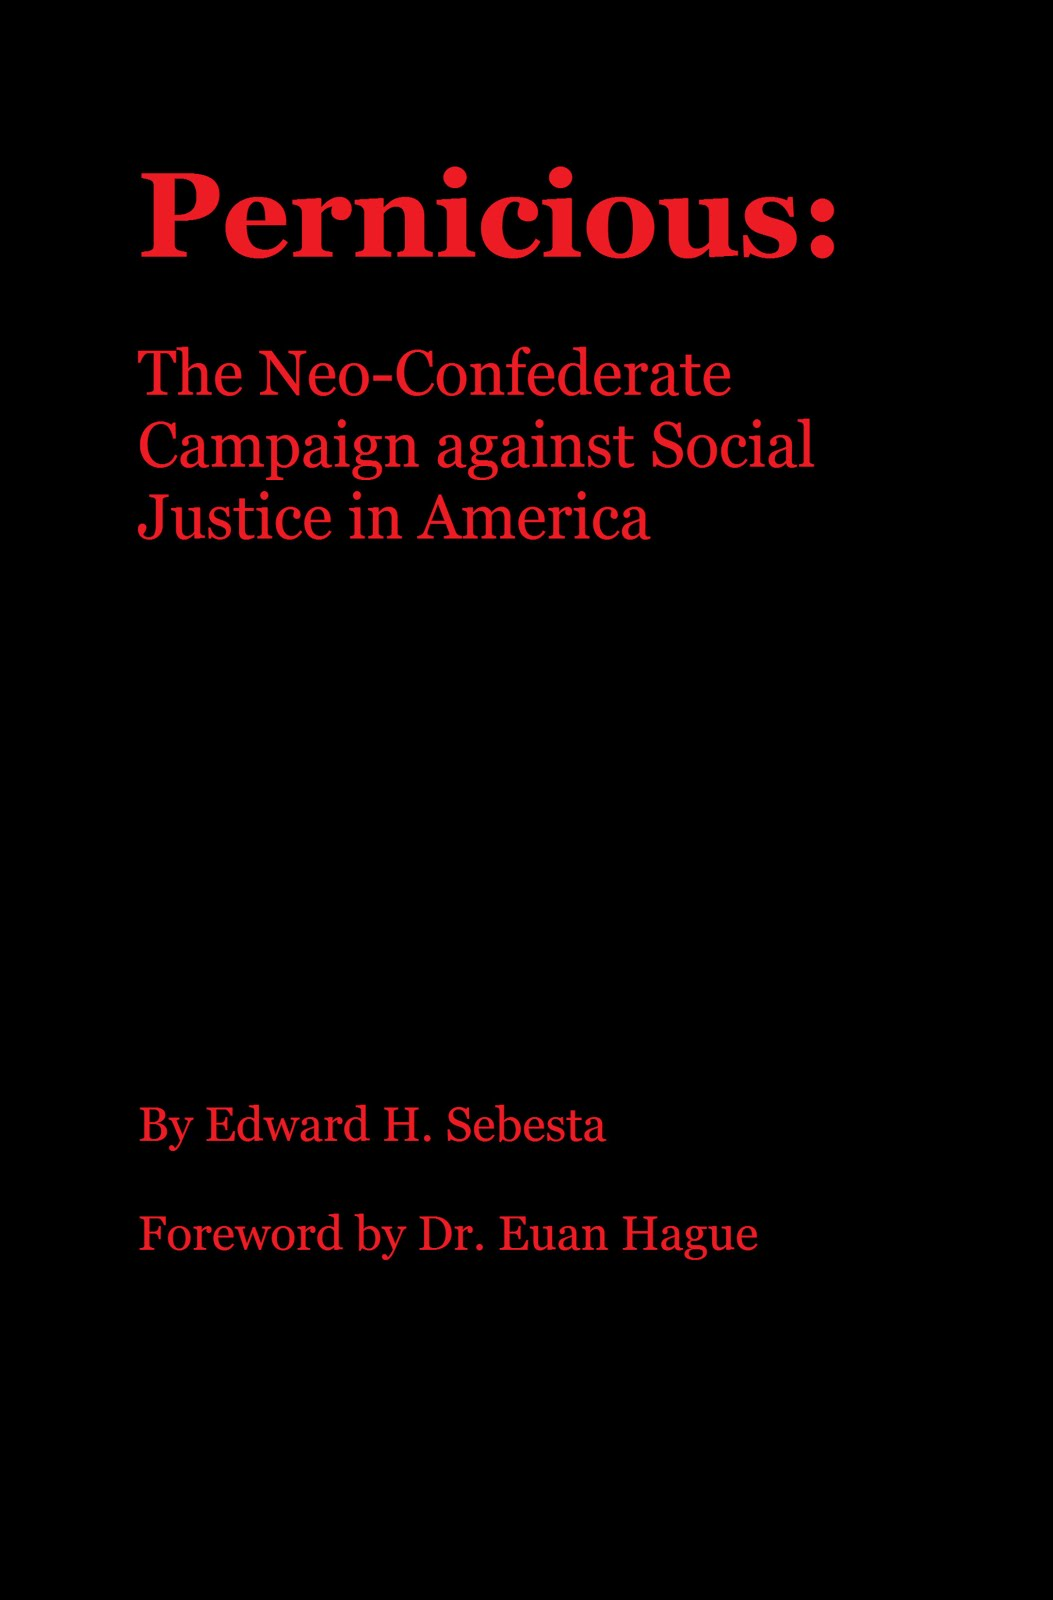 Pernicious: The Neo-Confederate Campaign against Social Justice